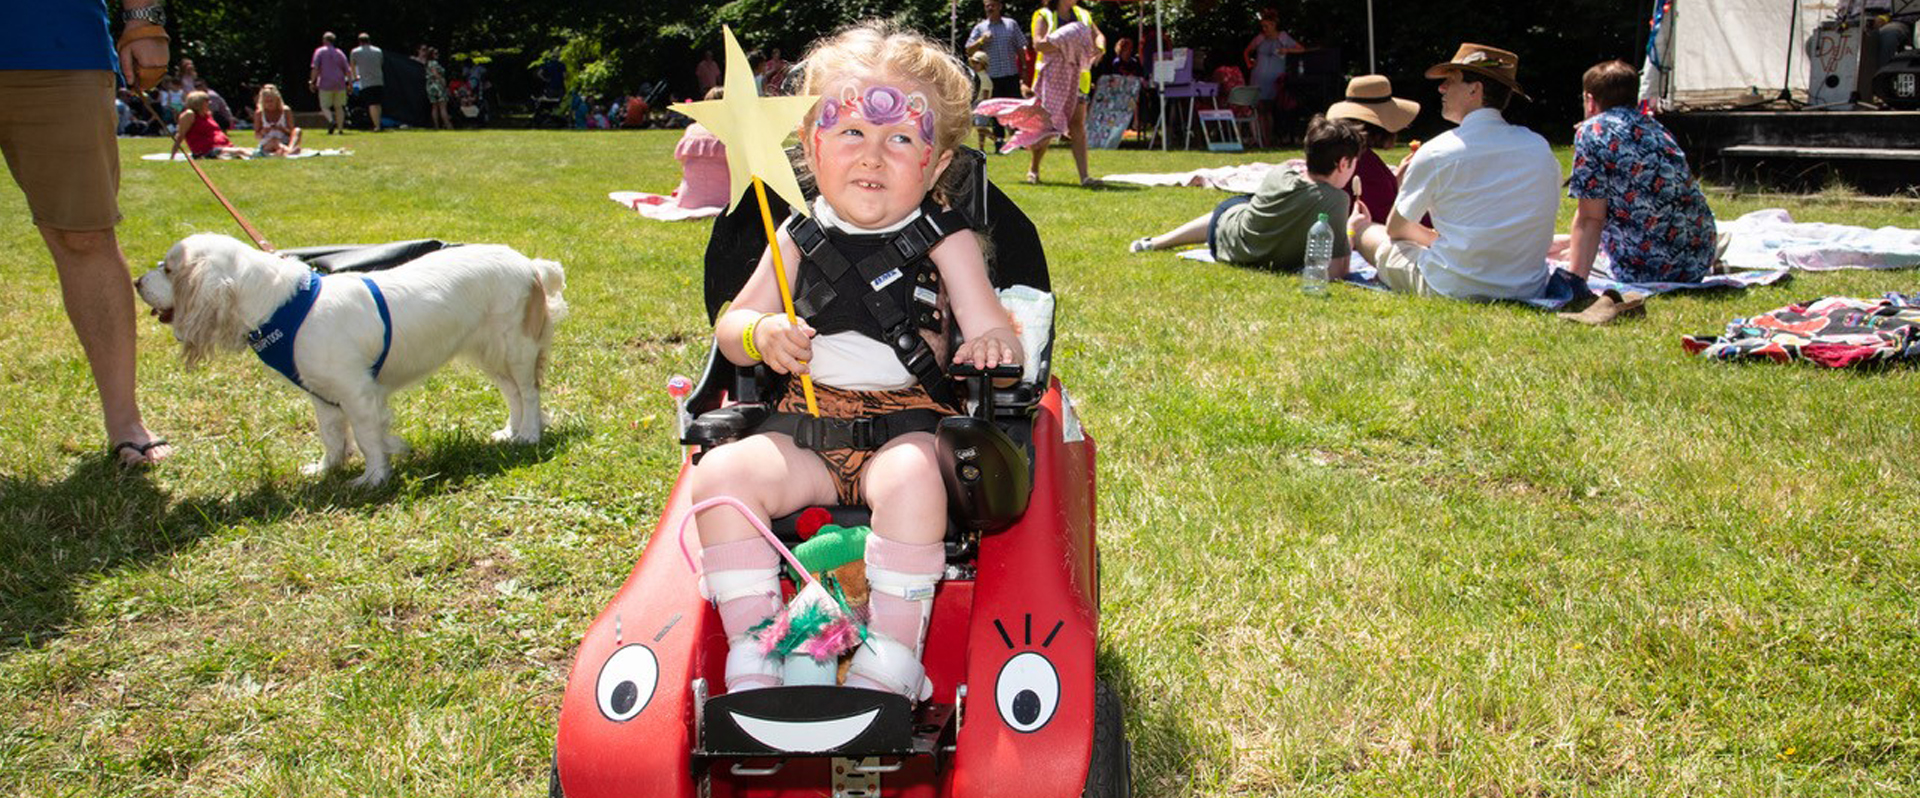 Young girl in Wizzybug powered wheelchair, in a park, wearing face paint and holding fairy wand